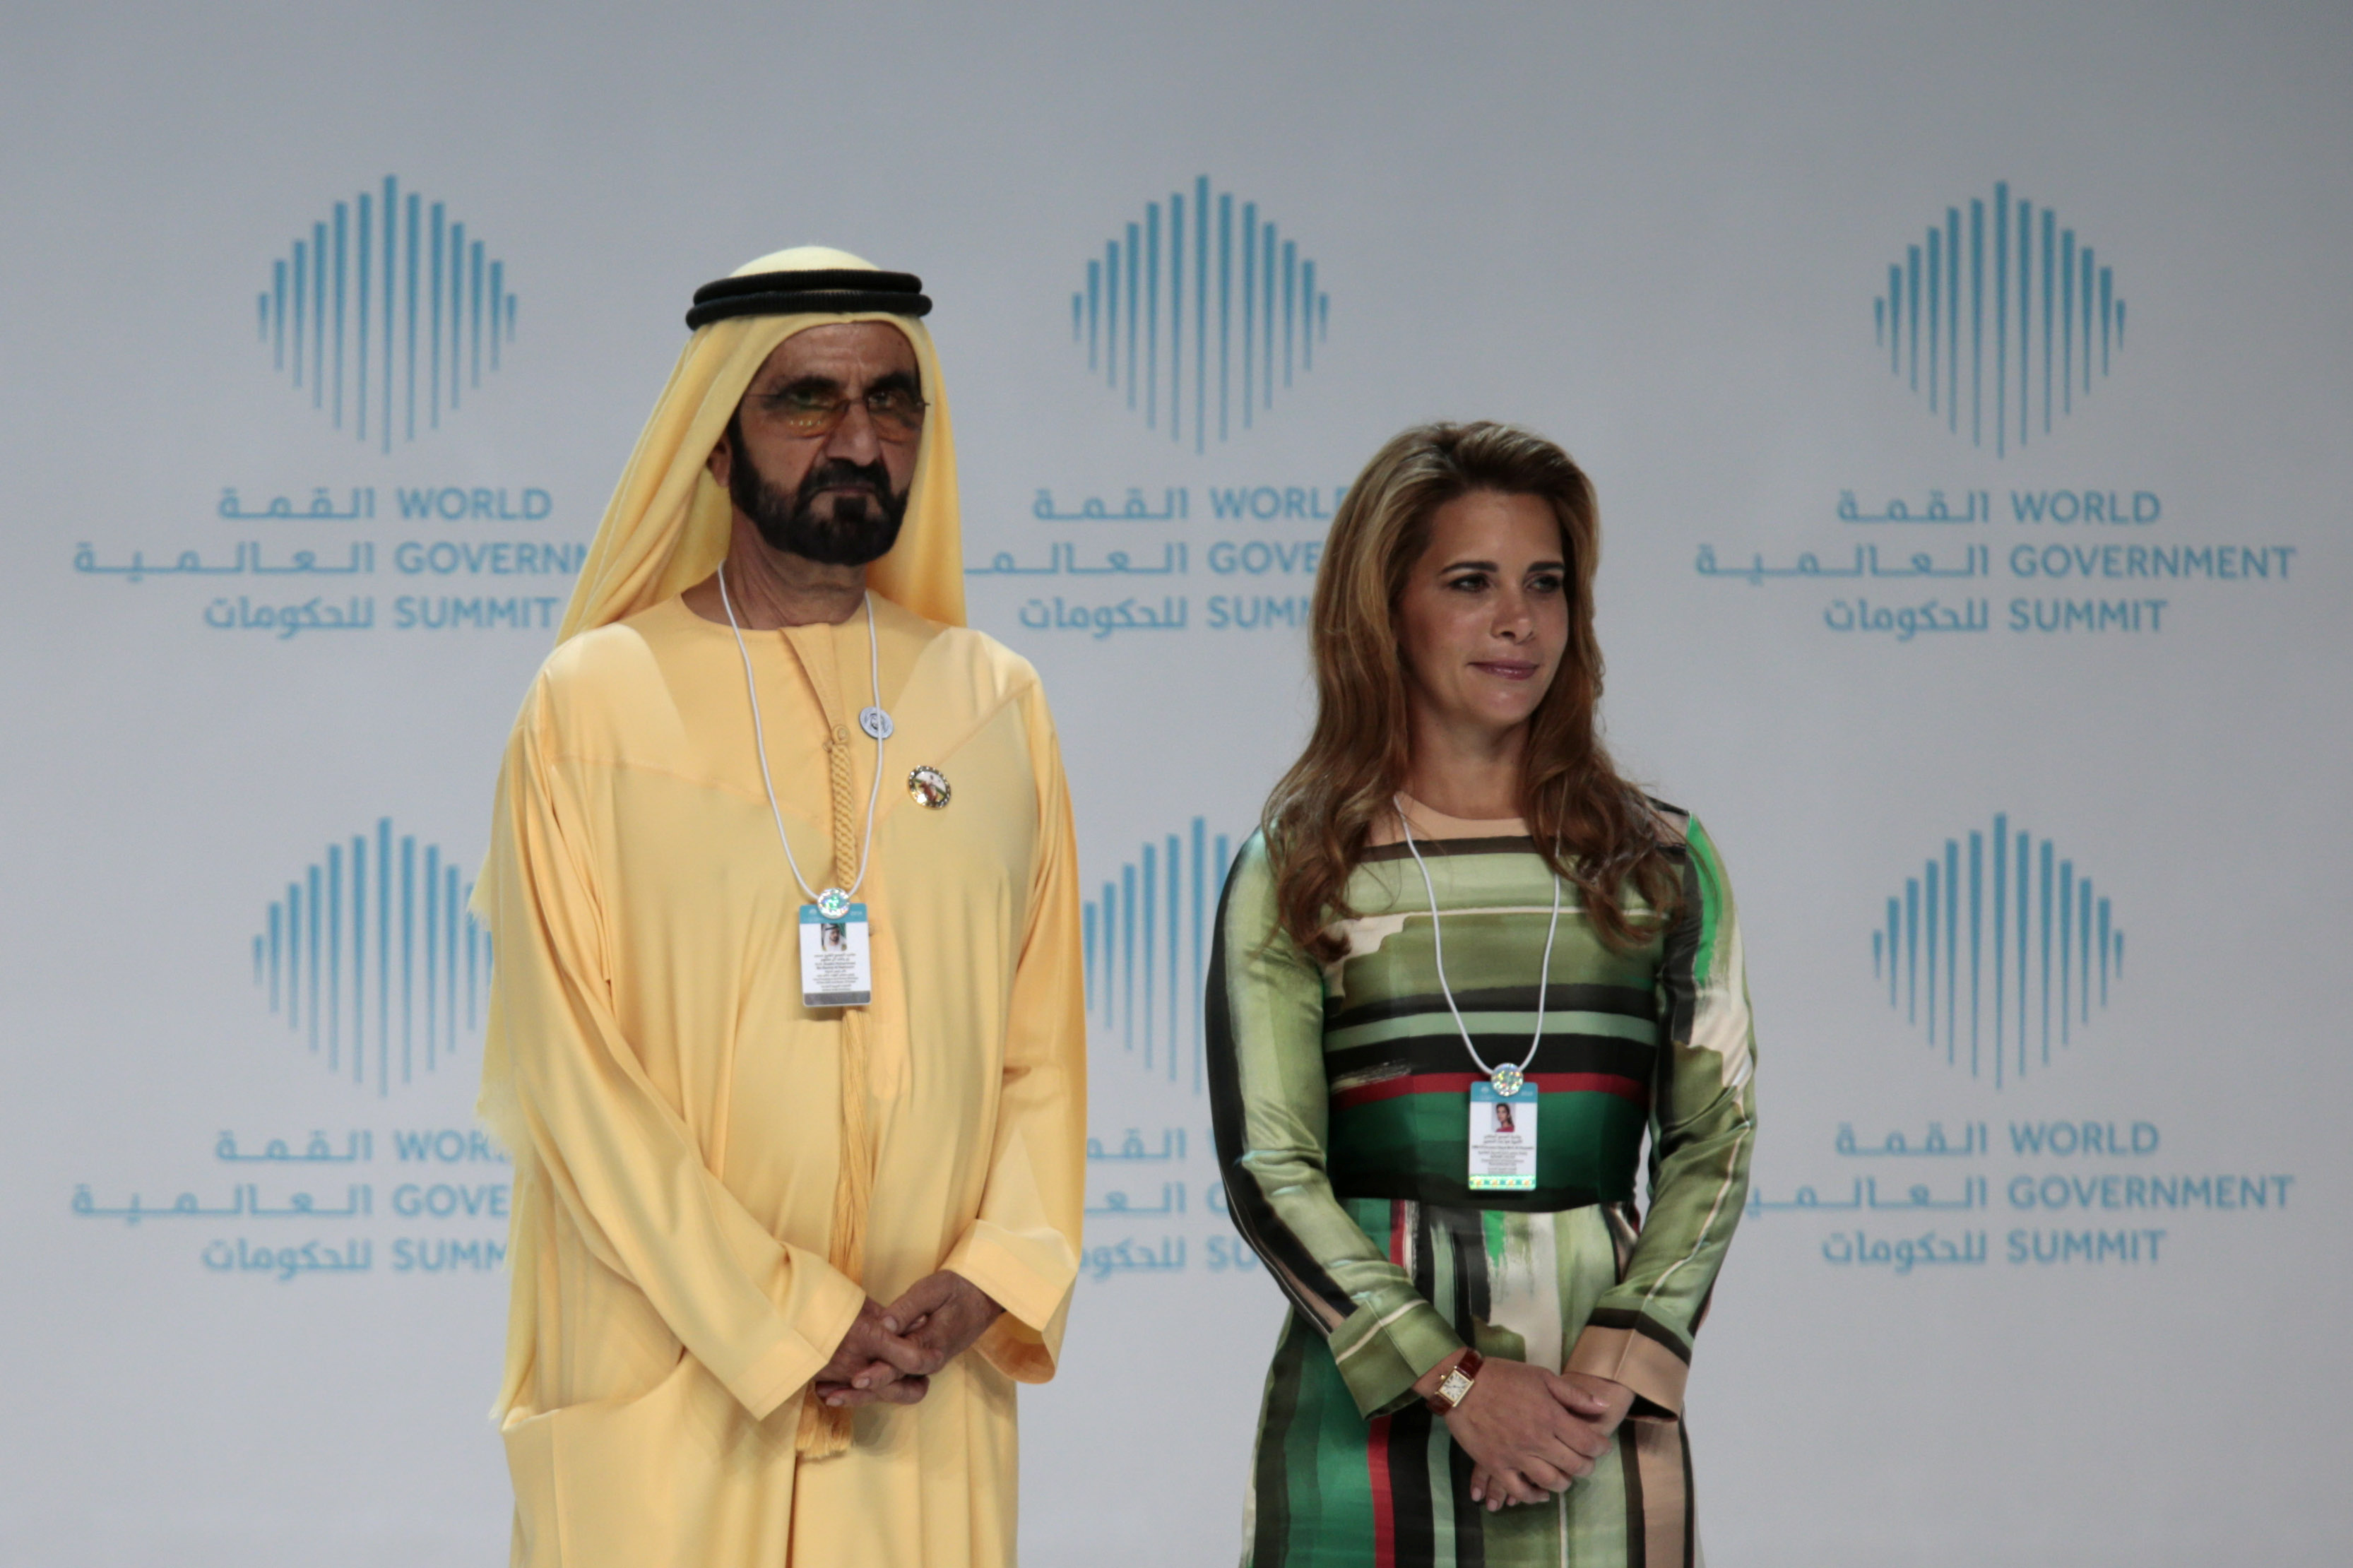 Prime Minister and Vice-President of the United Arab Emirates and ruler of Dubai Sheikh Mohammed bin Rashid al-Maktoum and his wife Princess Haya bint al-Hussein attend the World Government Summit in Dubai, United Arab Emirates February 11, 2018. REUTERS/Christopher Pike